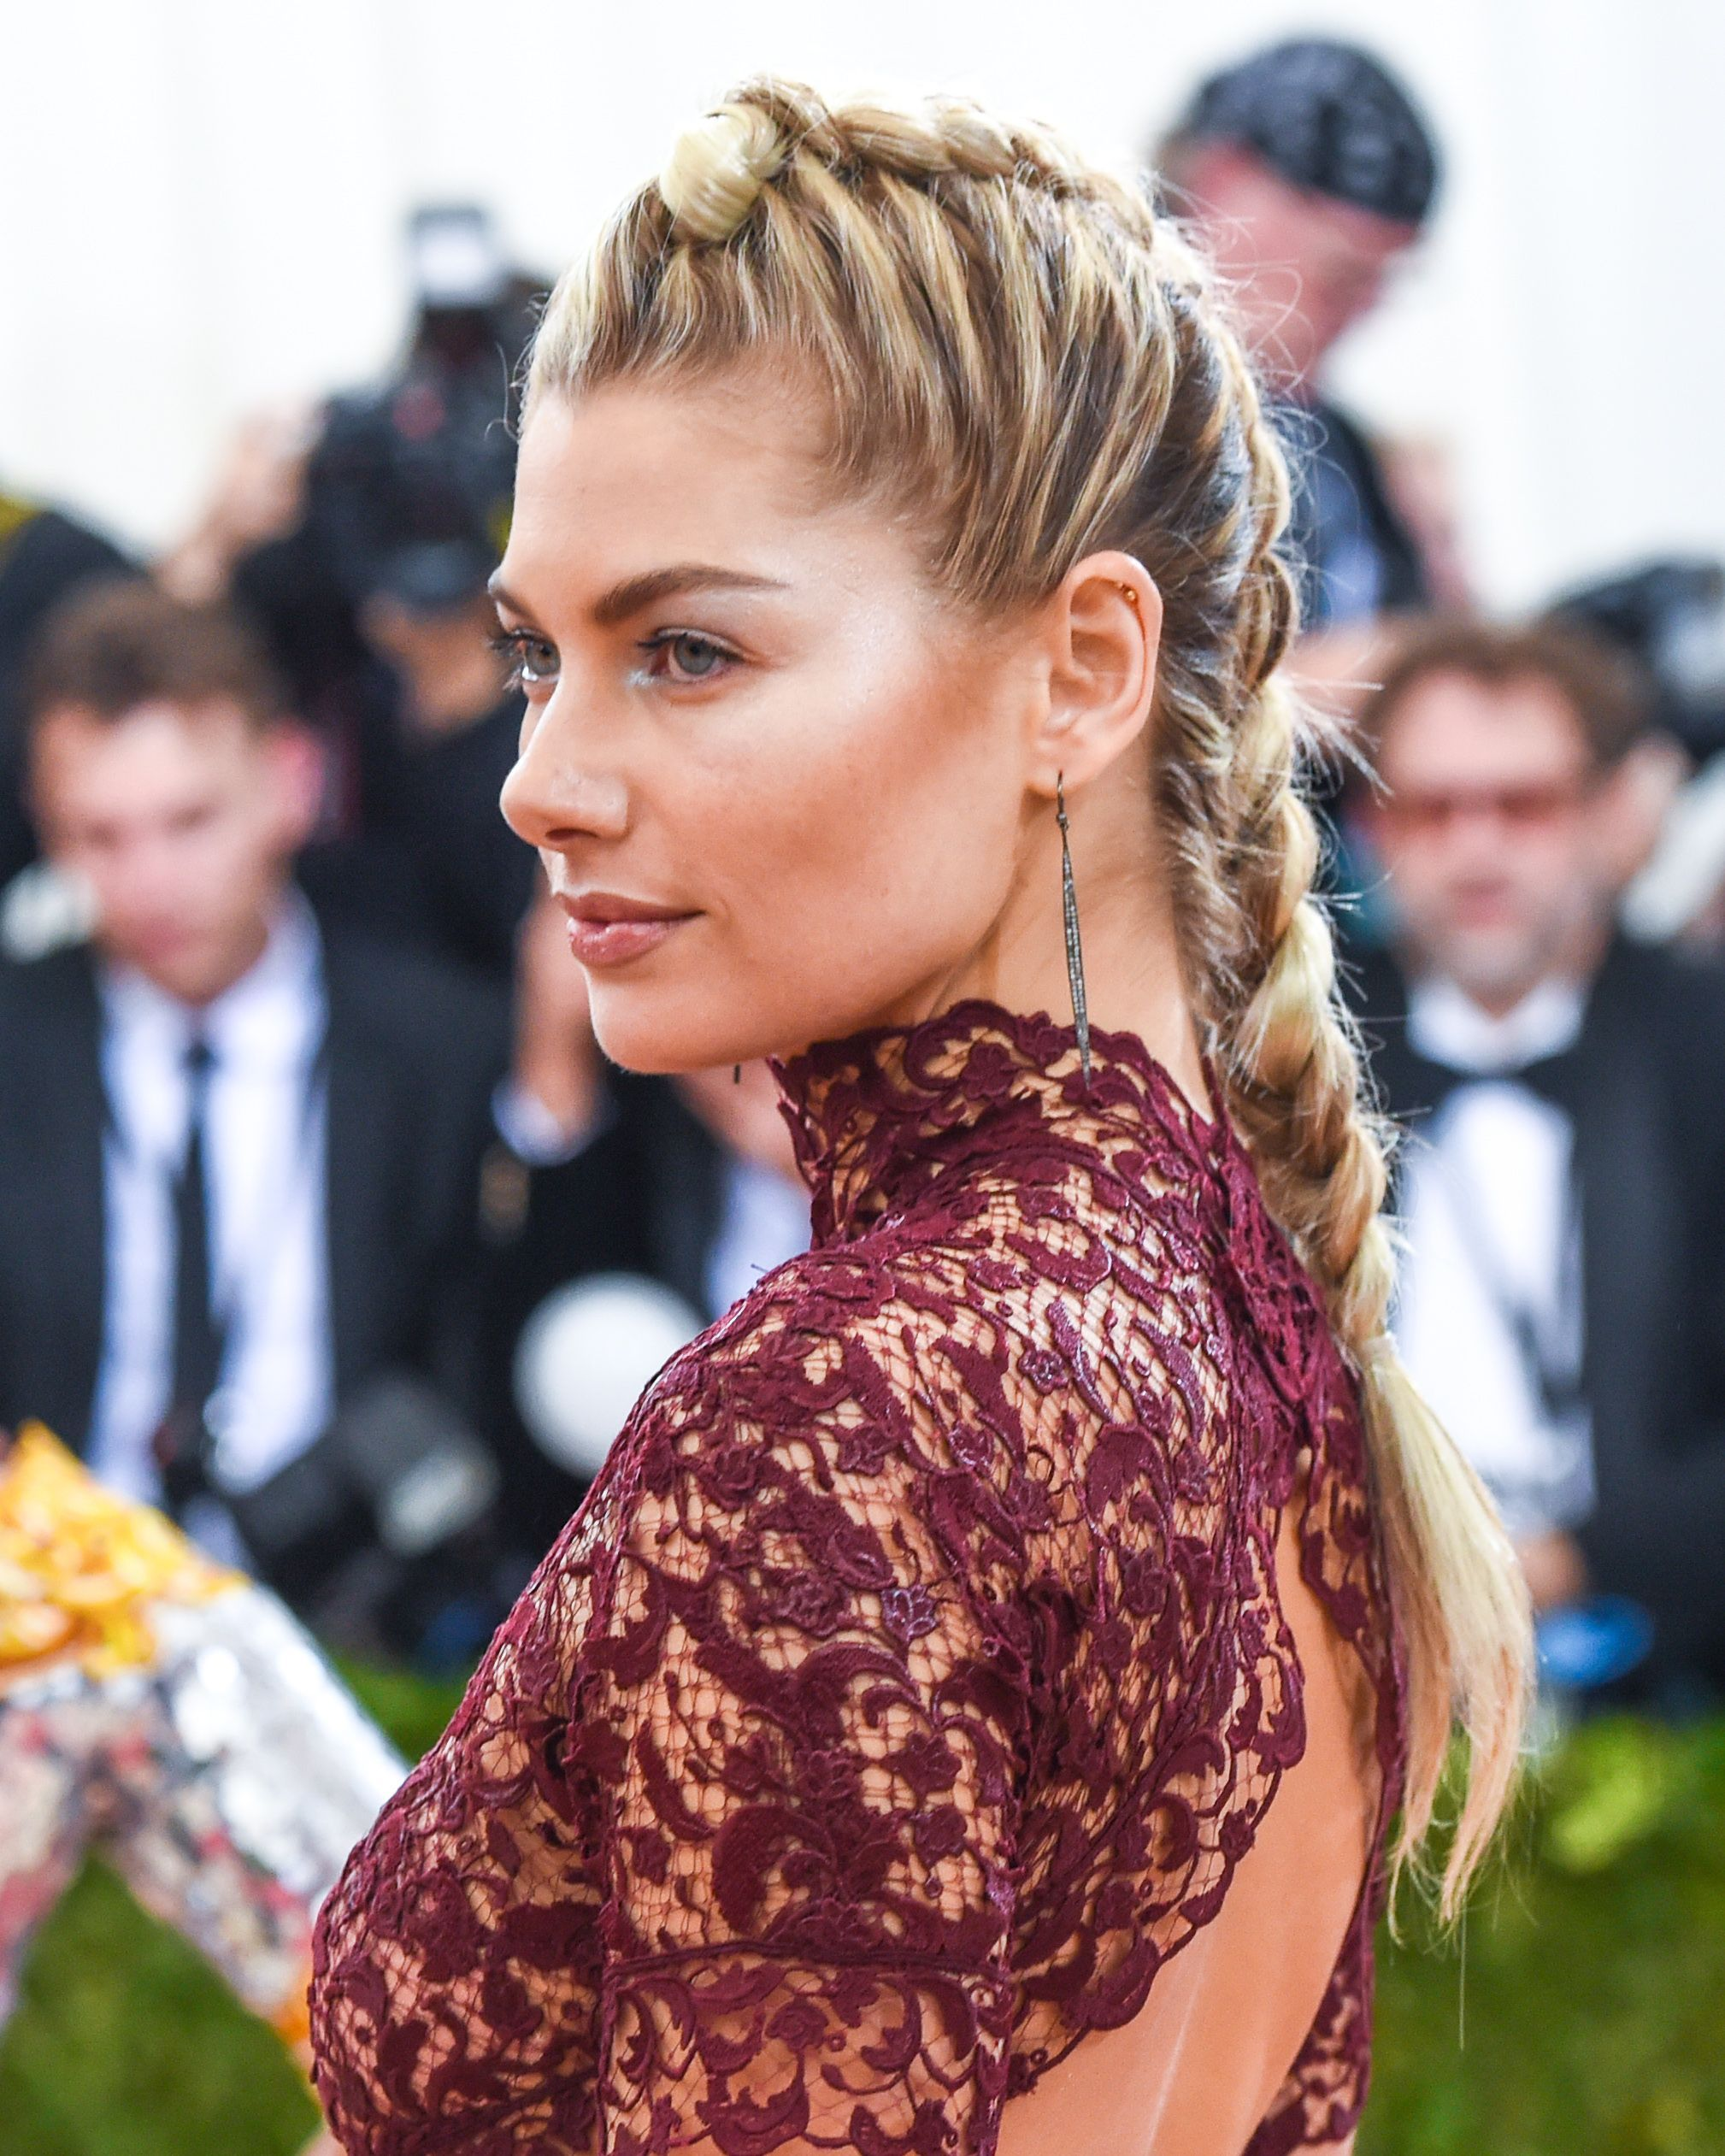 32 A List Braid Styles For All The Plait Hairstyle Inspo You Could